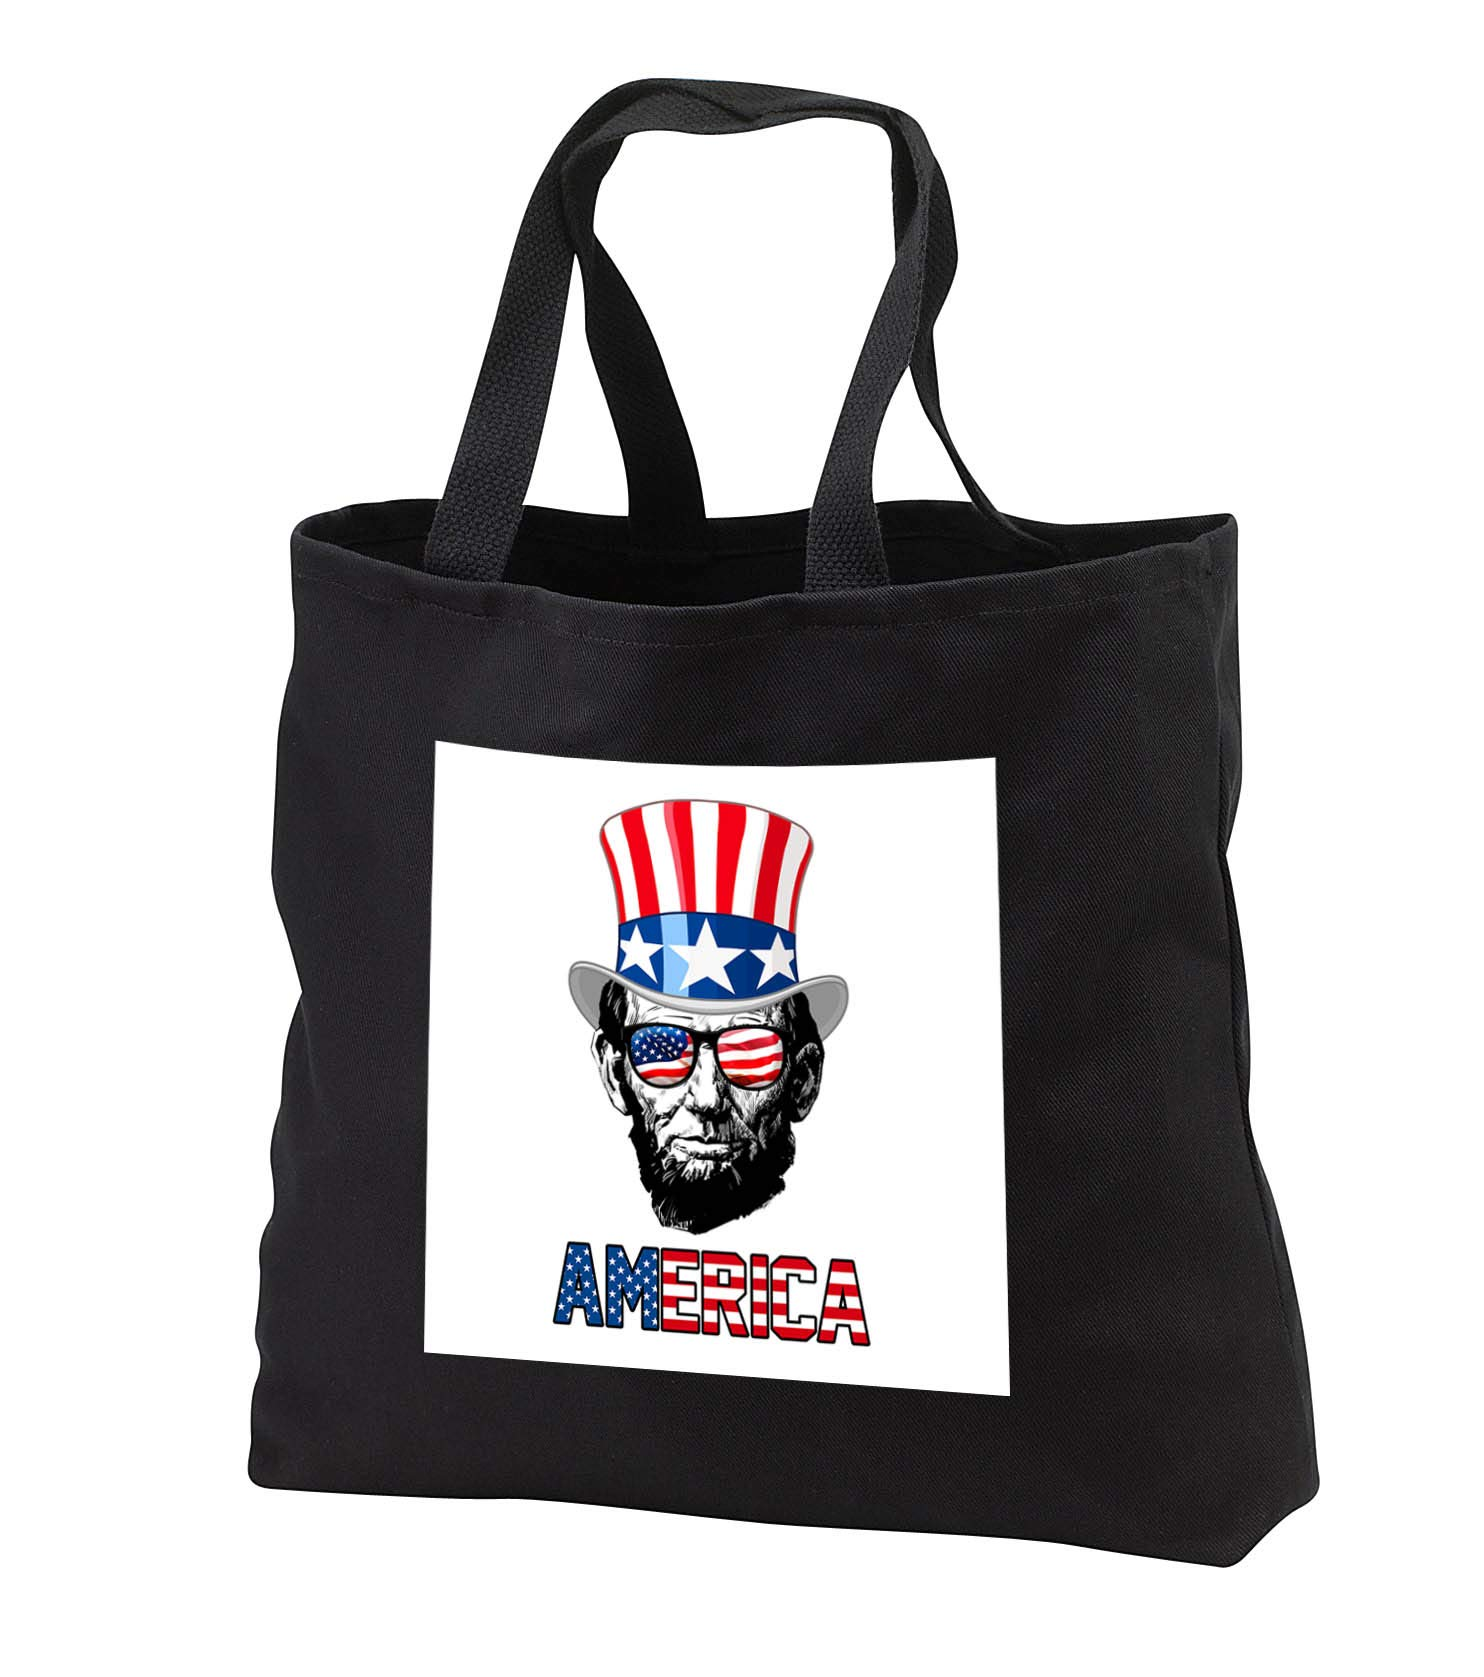 Carsten Reisinger - Illustrations - Abraham Lincoln wearing a USA flag top hat and sunglasses America - Tote Bags - Black Tote Bag 14w x 14h x 3d (tb_293414_1)